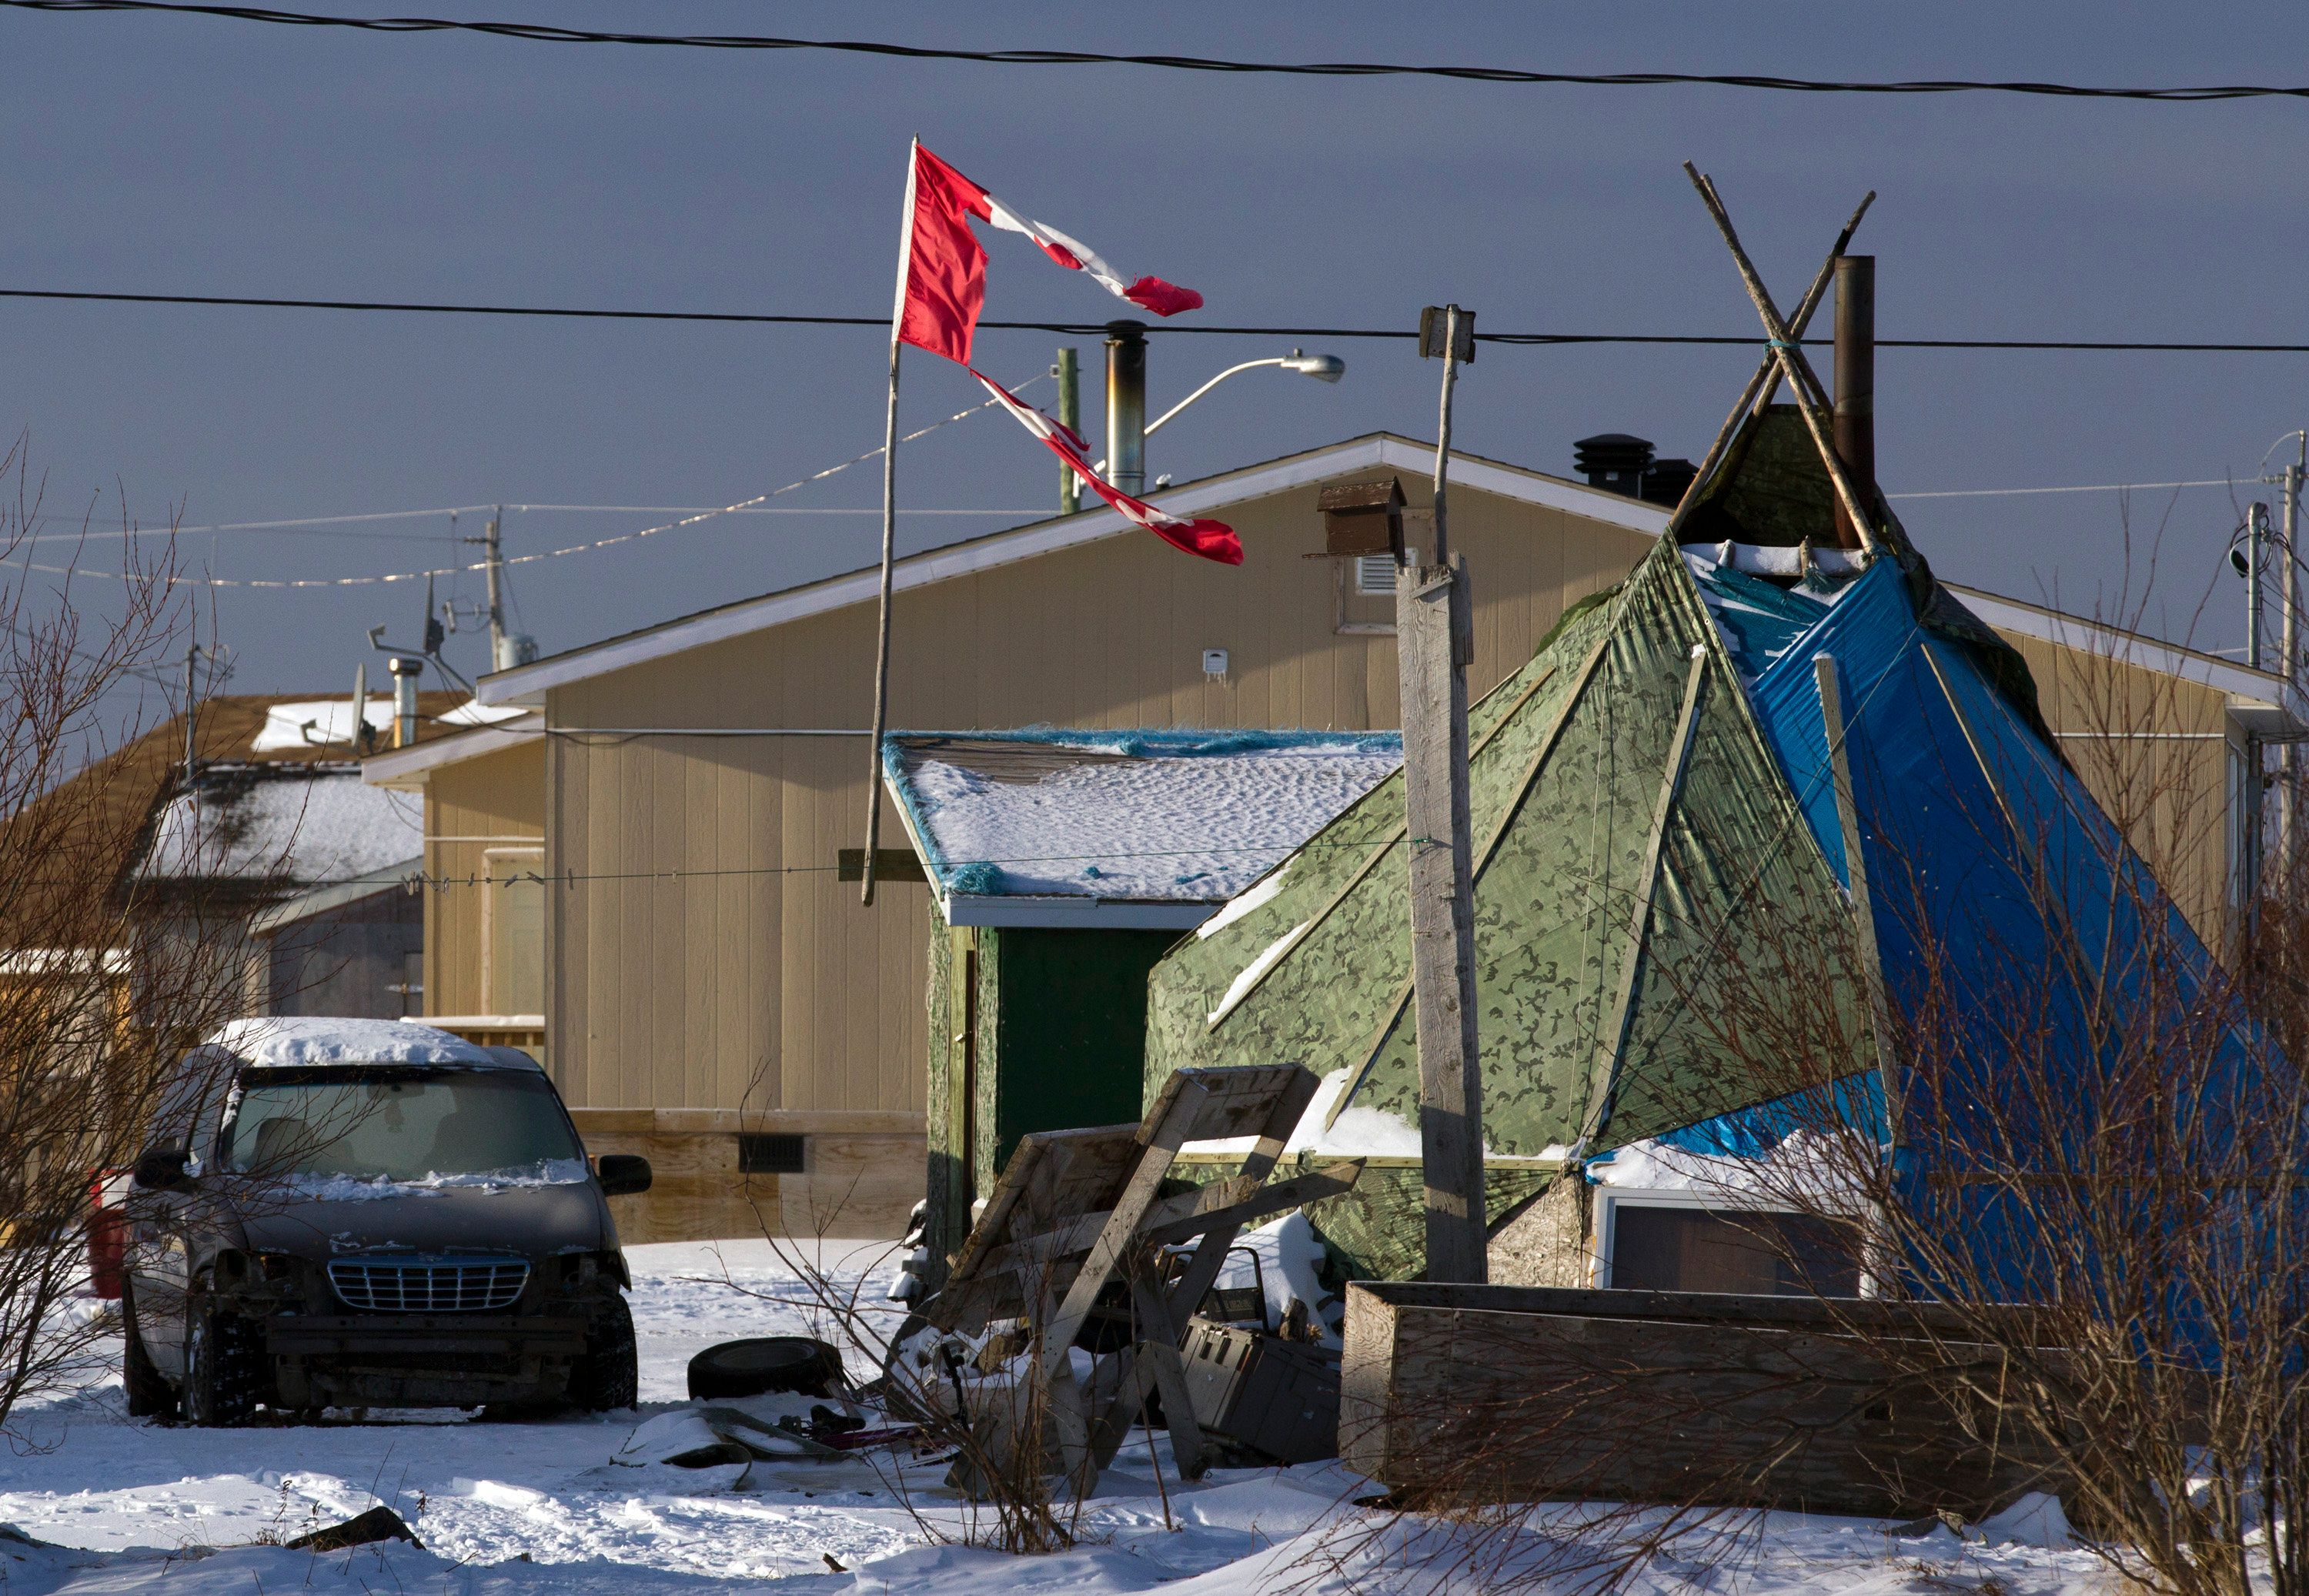 Northern Ontario's tiny Attawapiskat First Nation has entered a state of emergency following an alarmingly-high number o